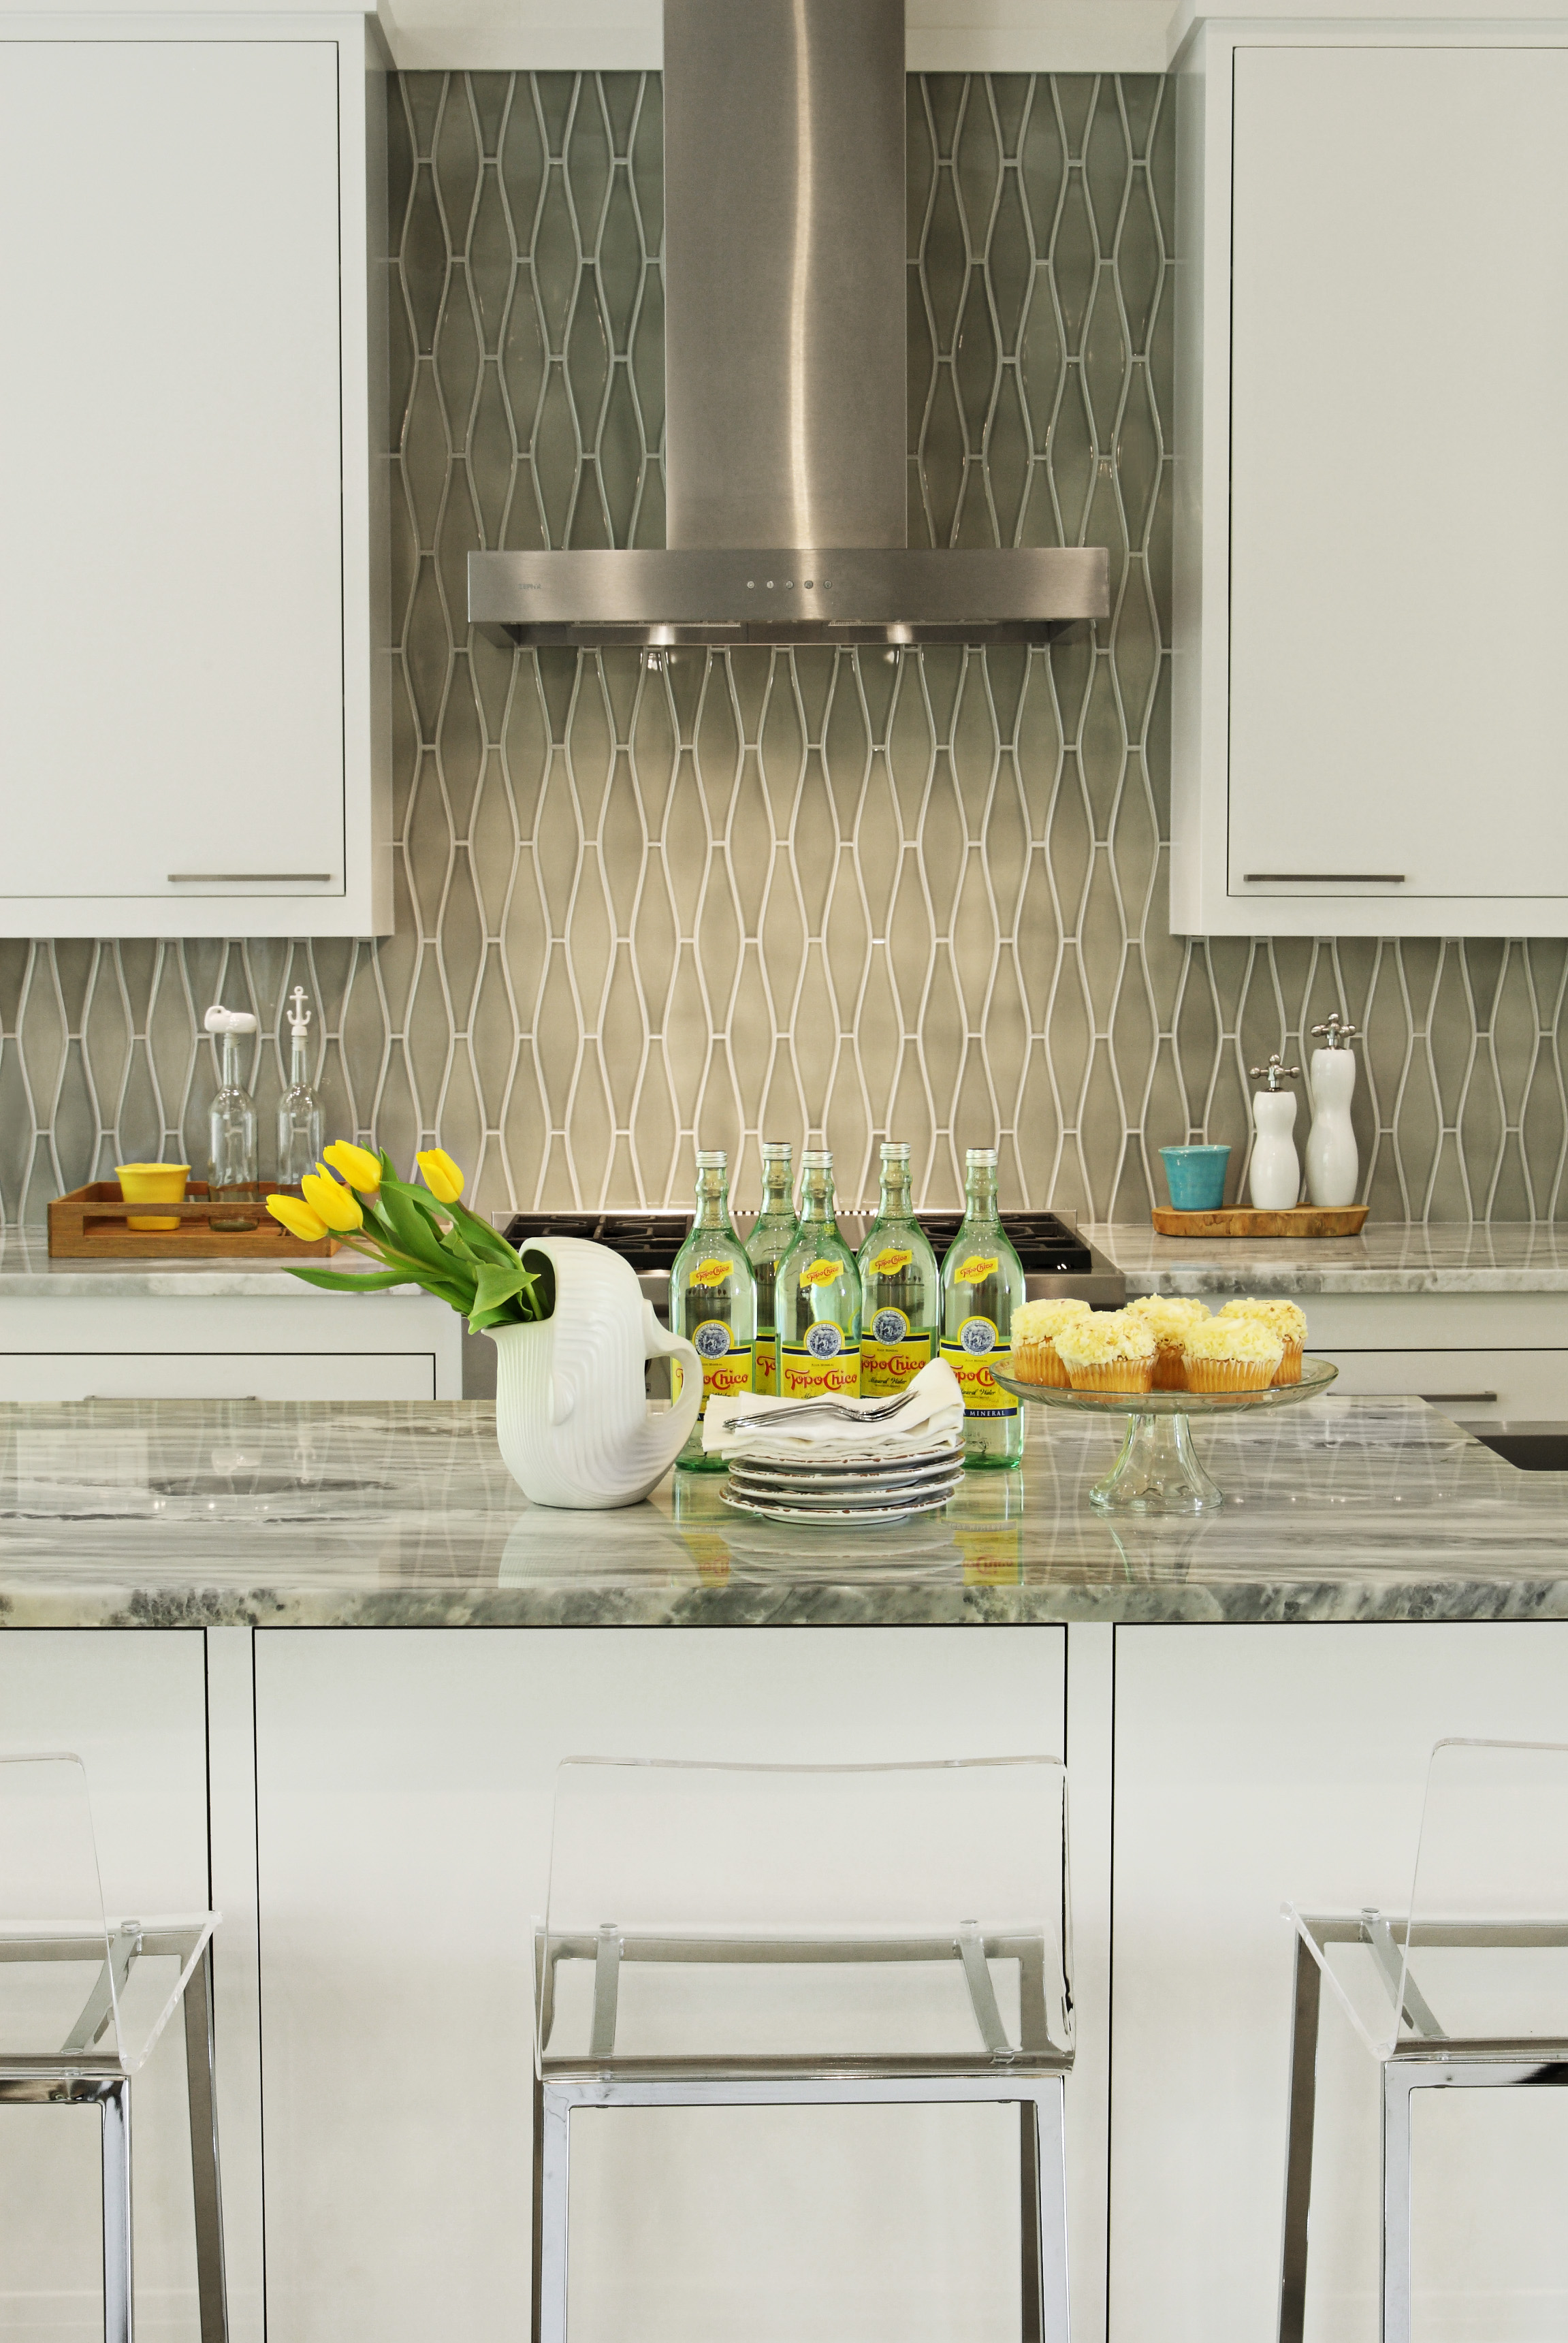 PR- Pratt & Larson - Elongated Ogee R346 - Ceramic - Backsplash.jpg